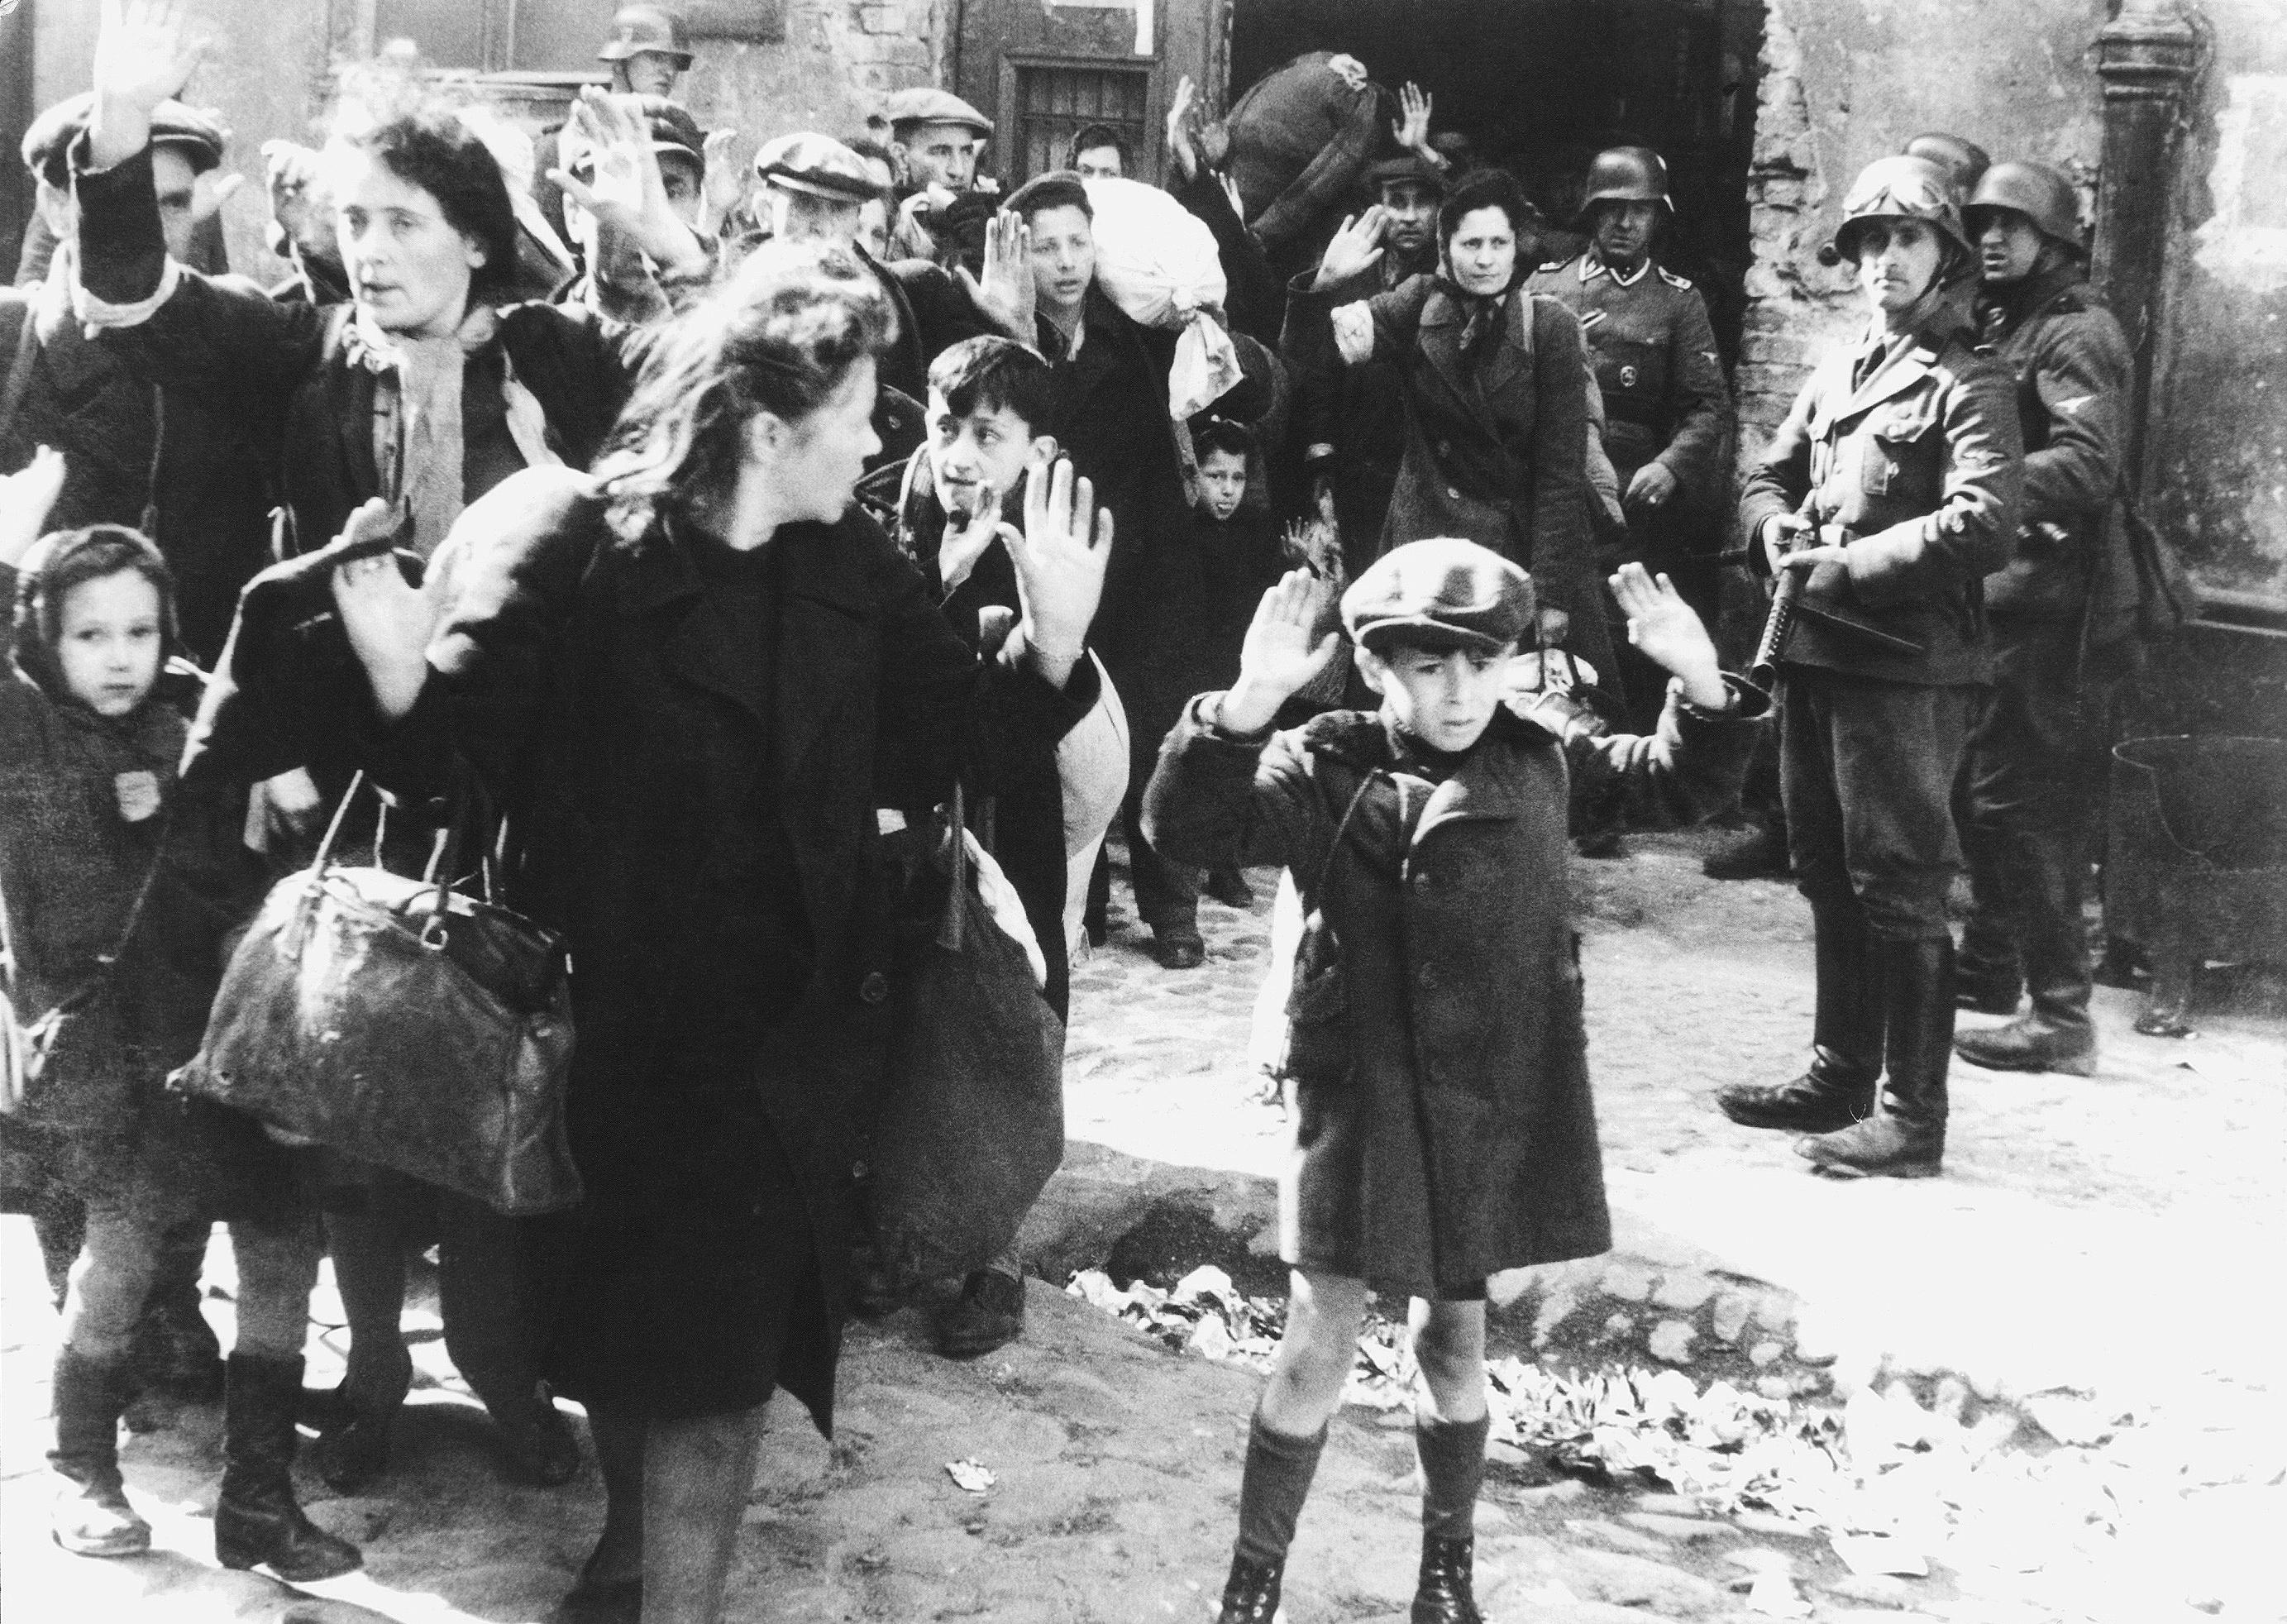 Heroism in Hell: The Warsaw Ghetto Uprising